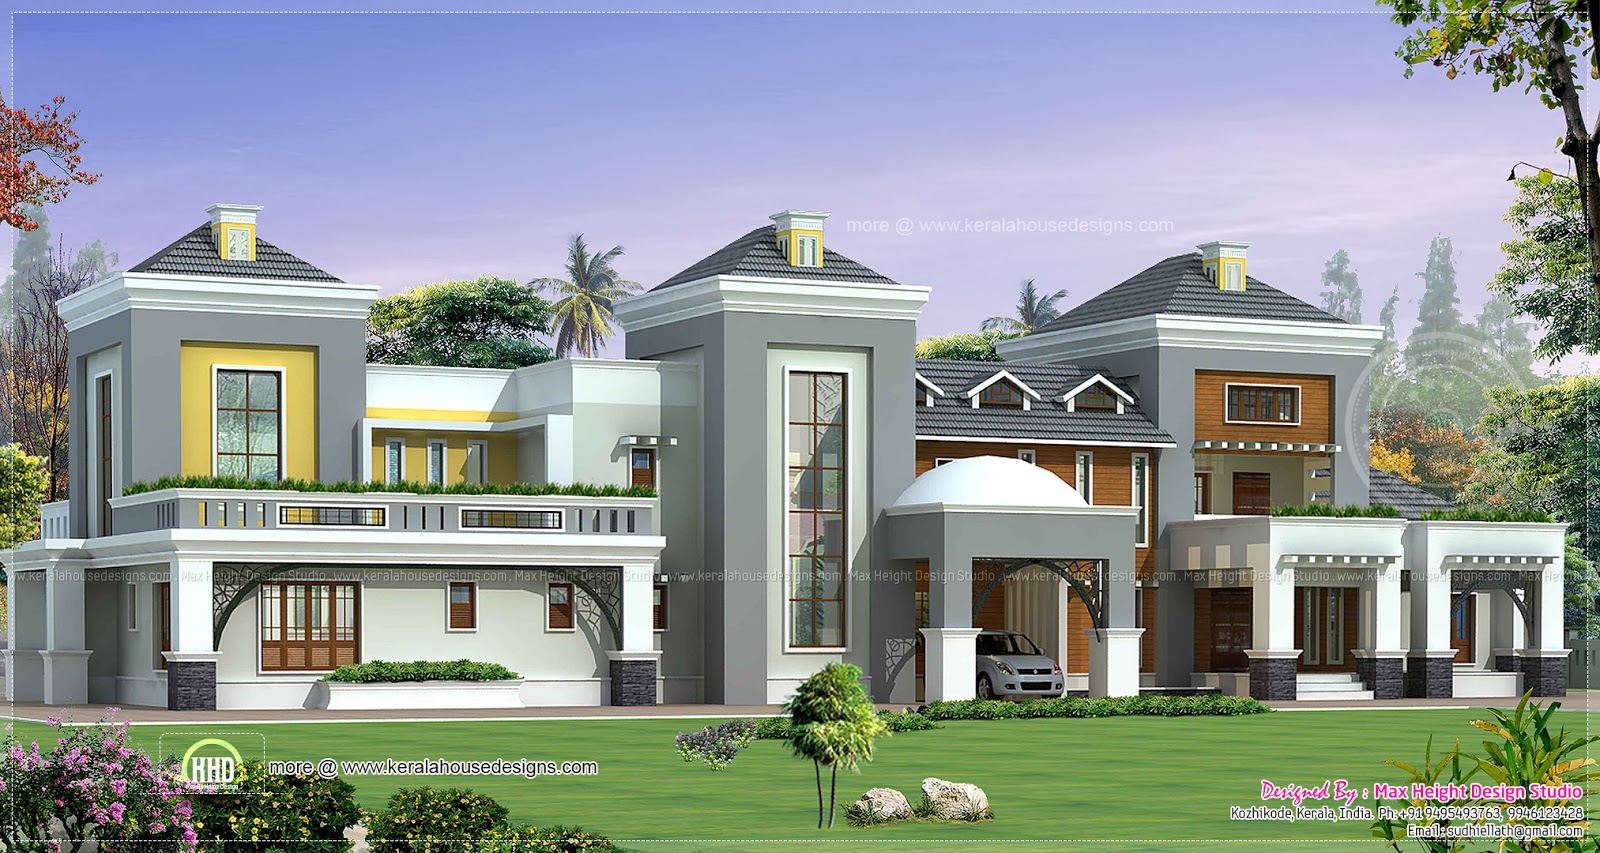 Small House Design Contemporary Style Keralahousedesigns